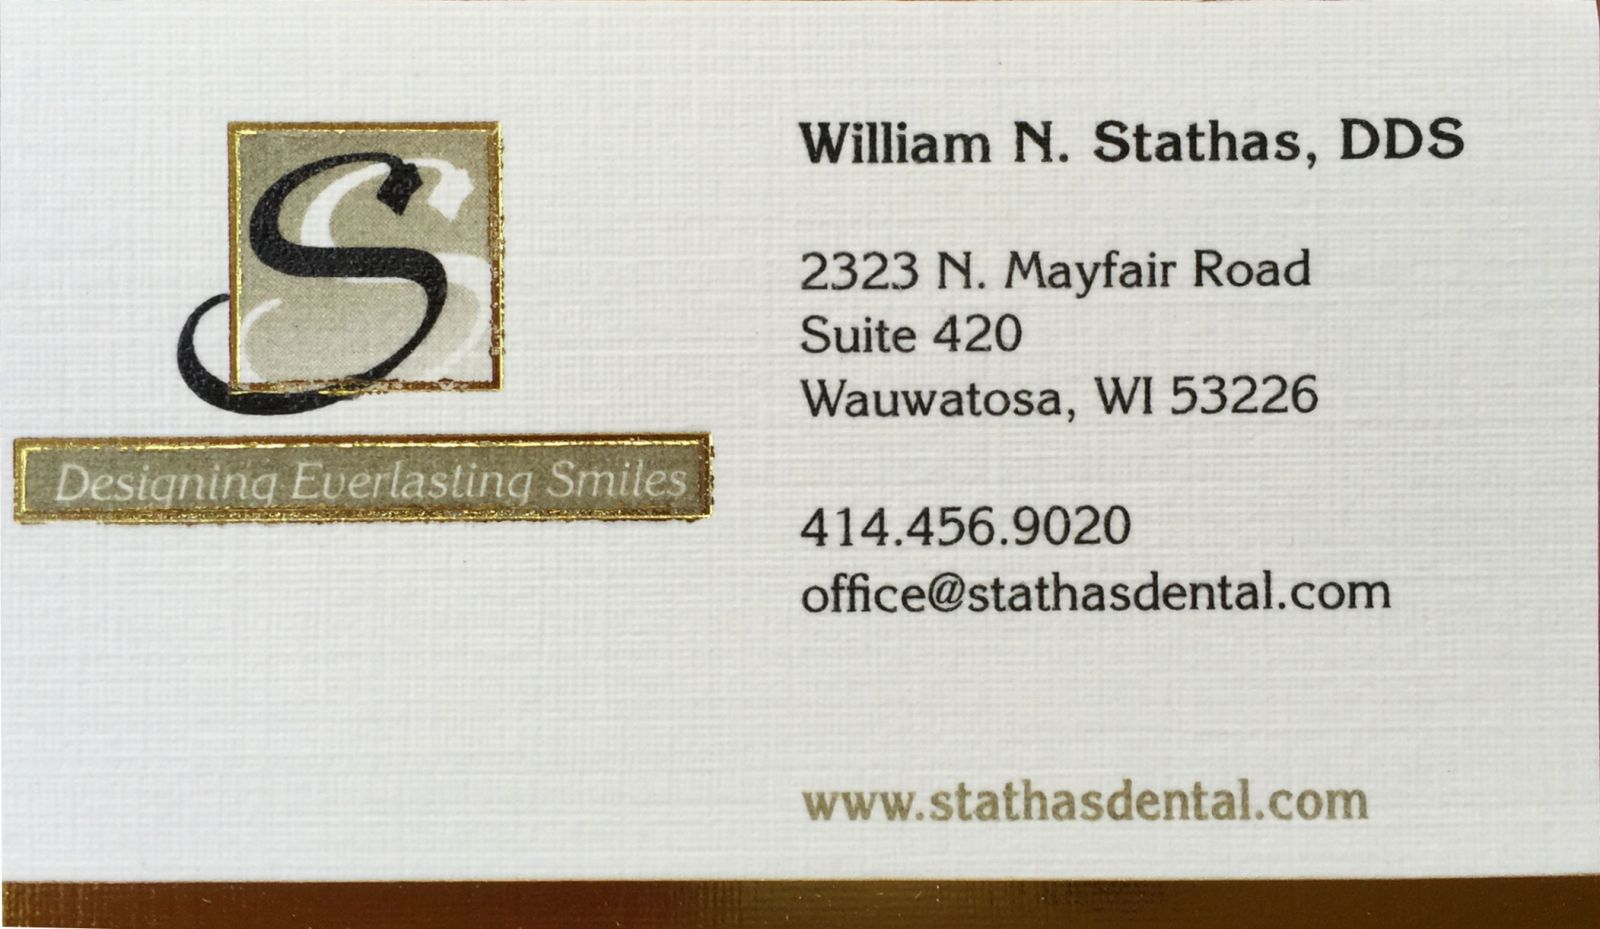 A business card of a dentist in Wauwatosa, WI